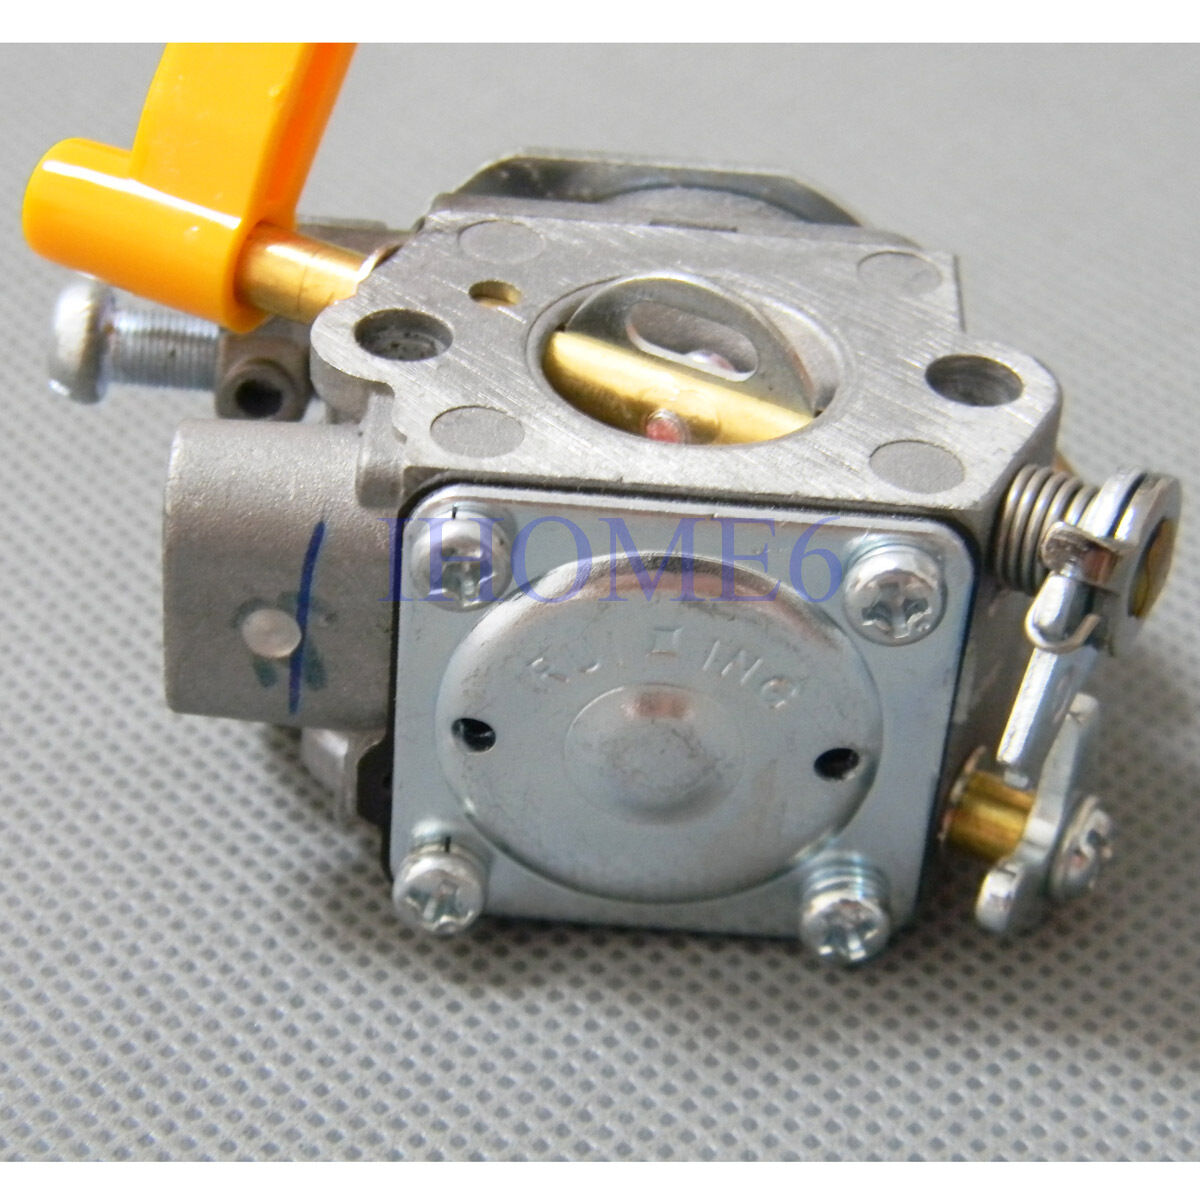 Carburetor carb for ryobi homelite 26cc 30cc trimmer 308054003 3074504